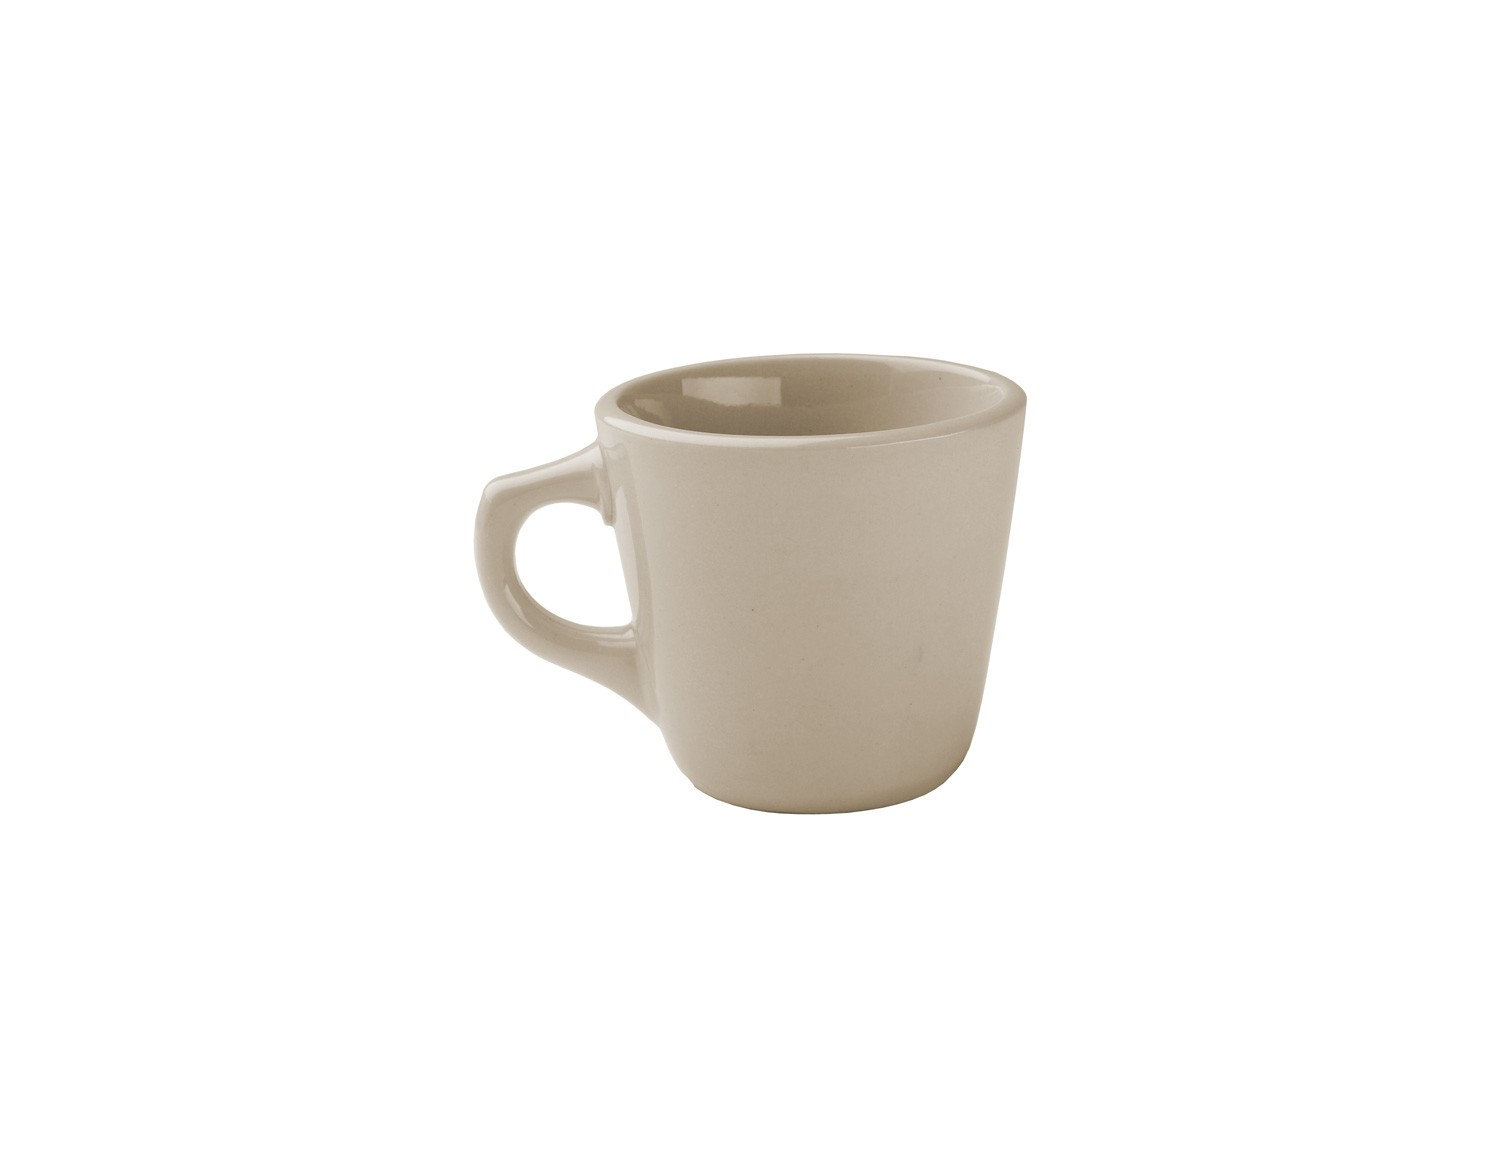 Yanco NR-1 Normandy Short Cup, 7 oz.